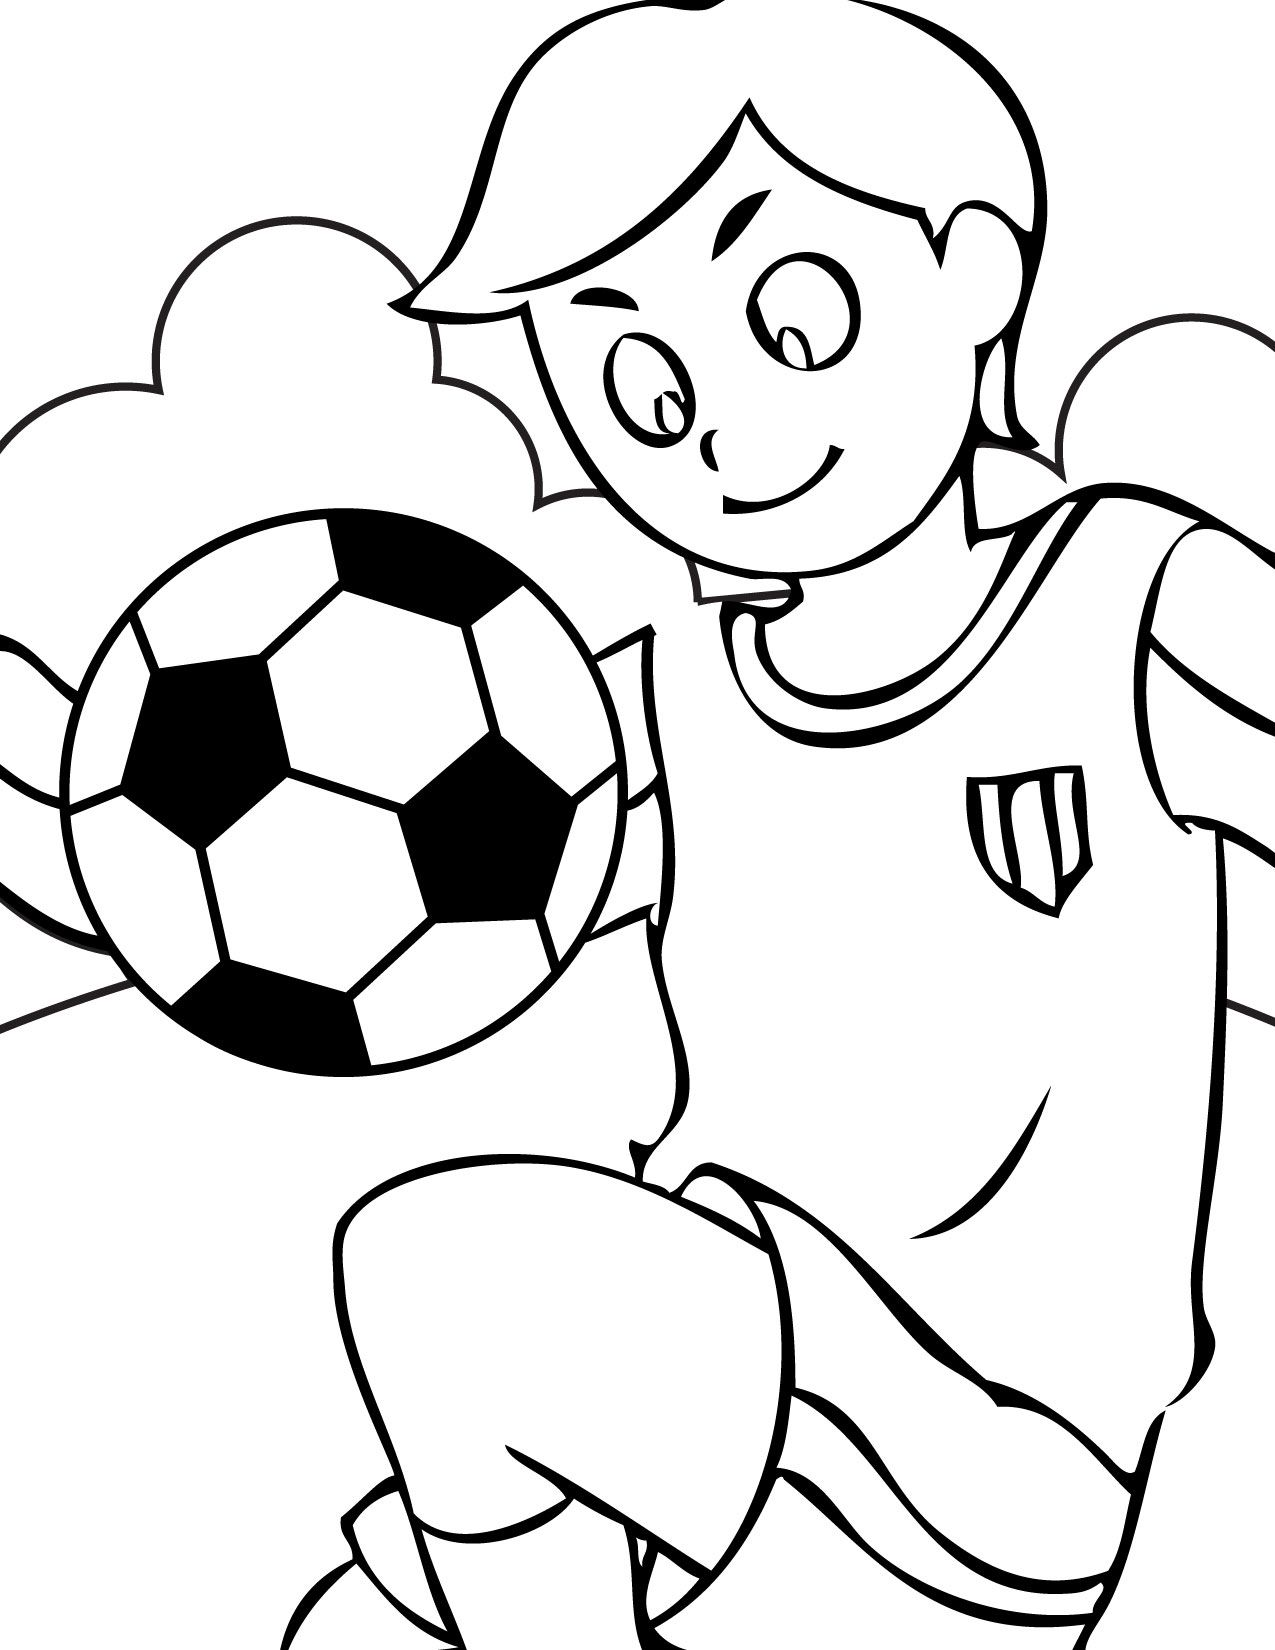 Free Coloring Pages Download Football For Kids Procoloring Of